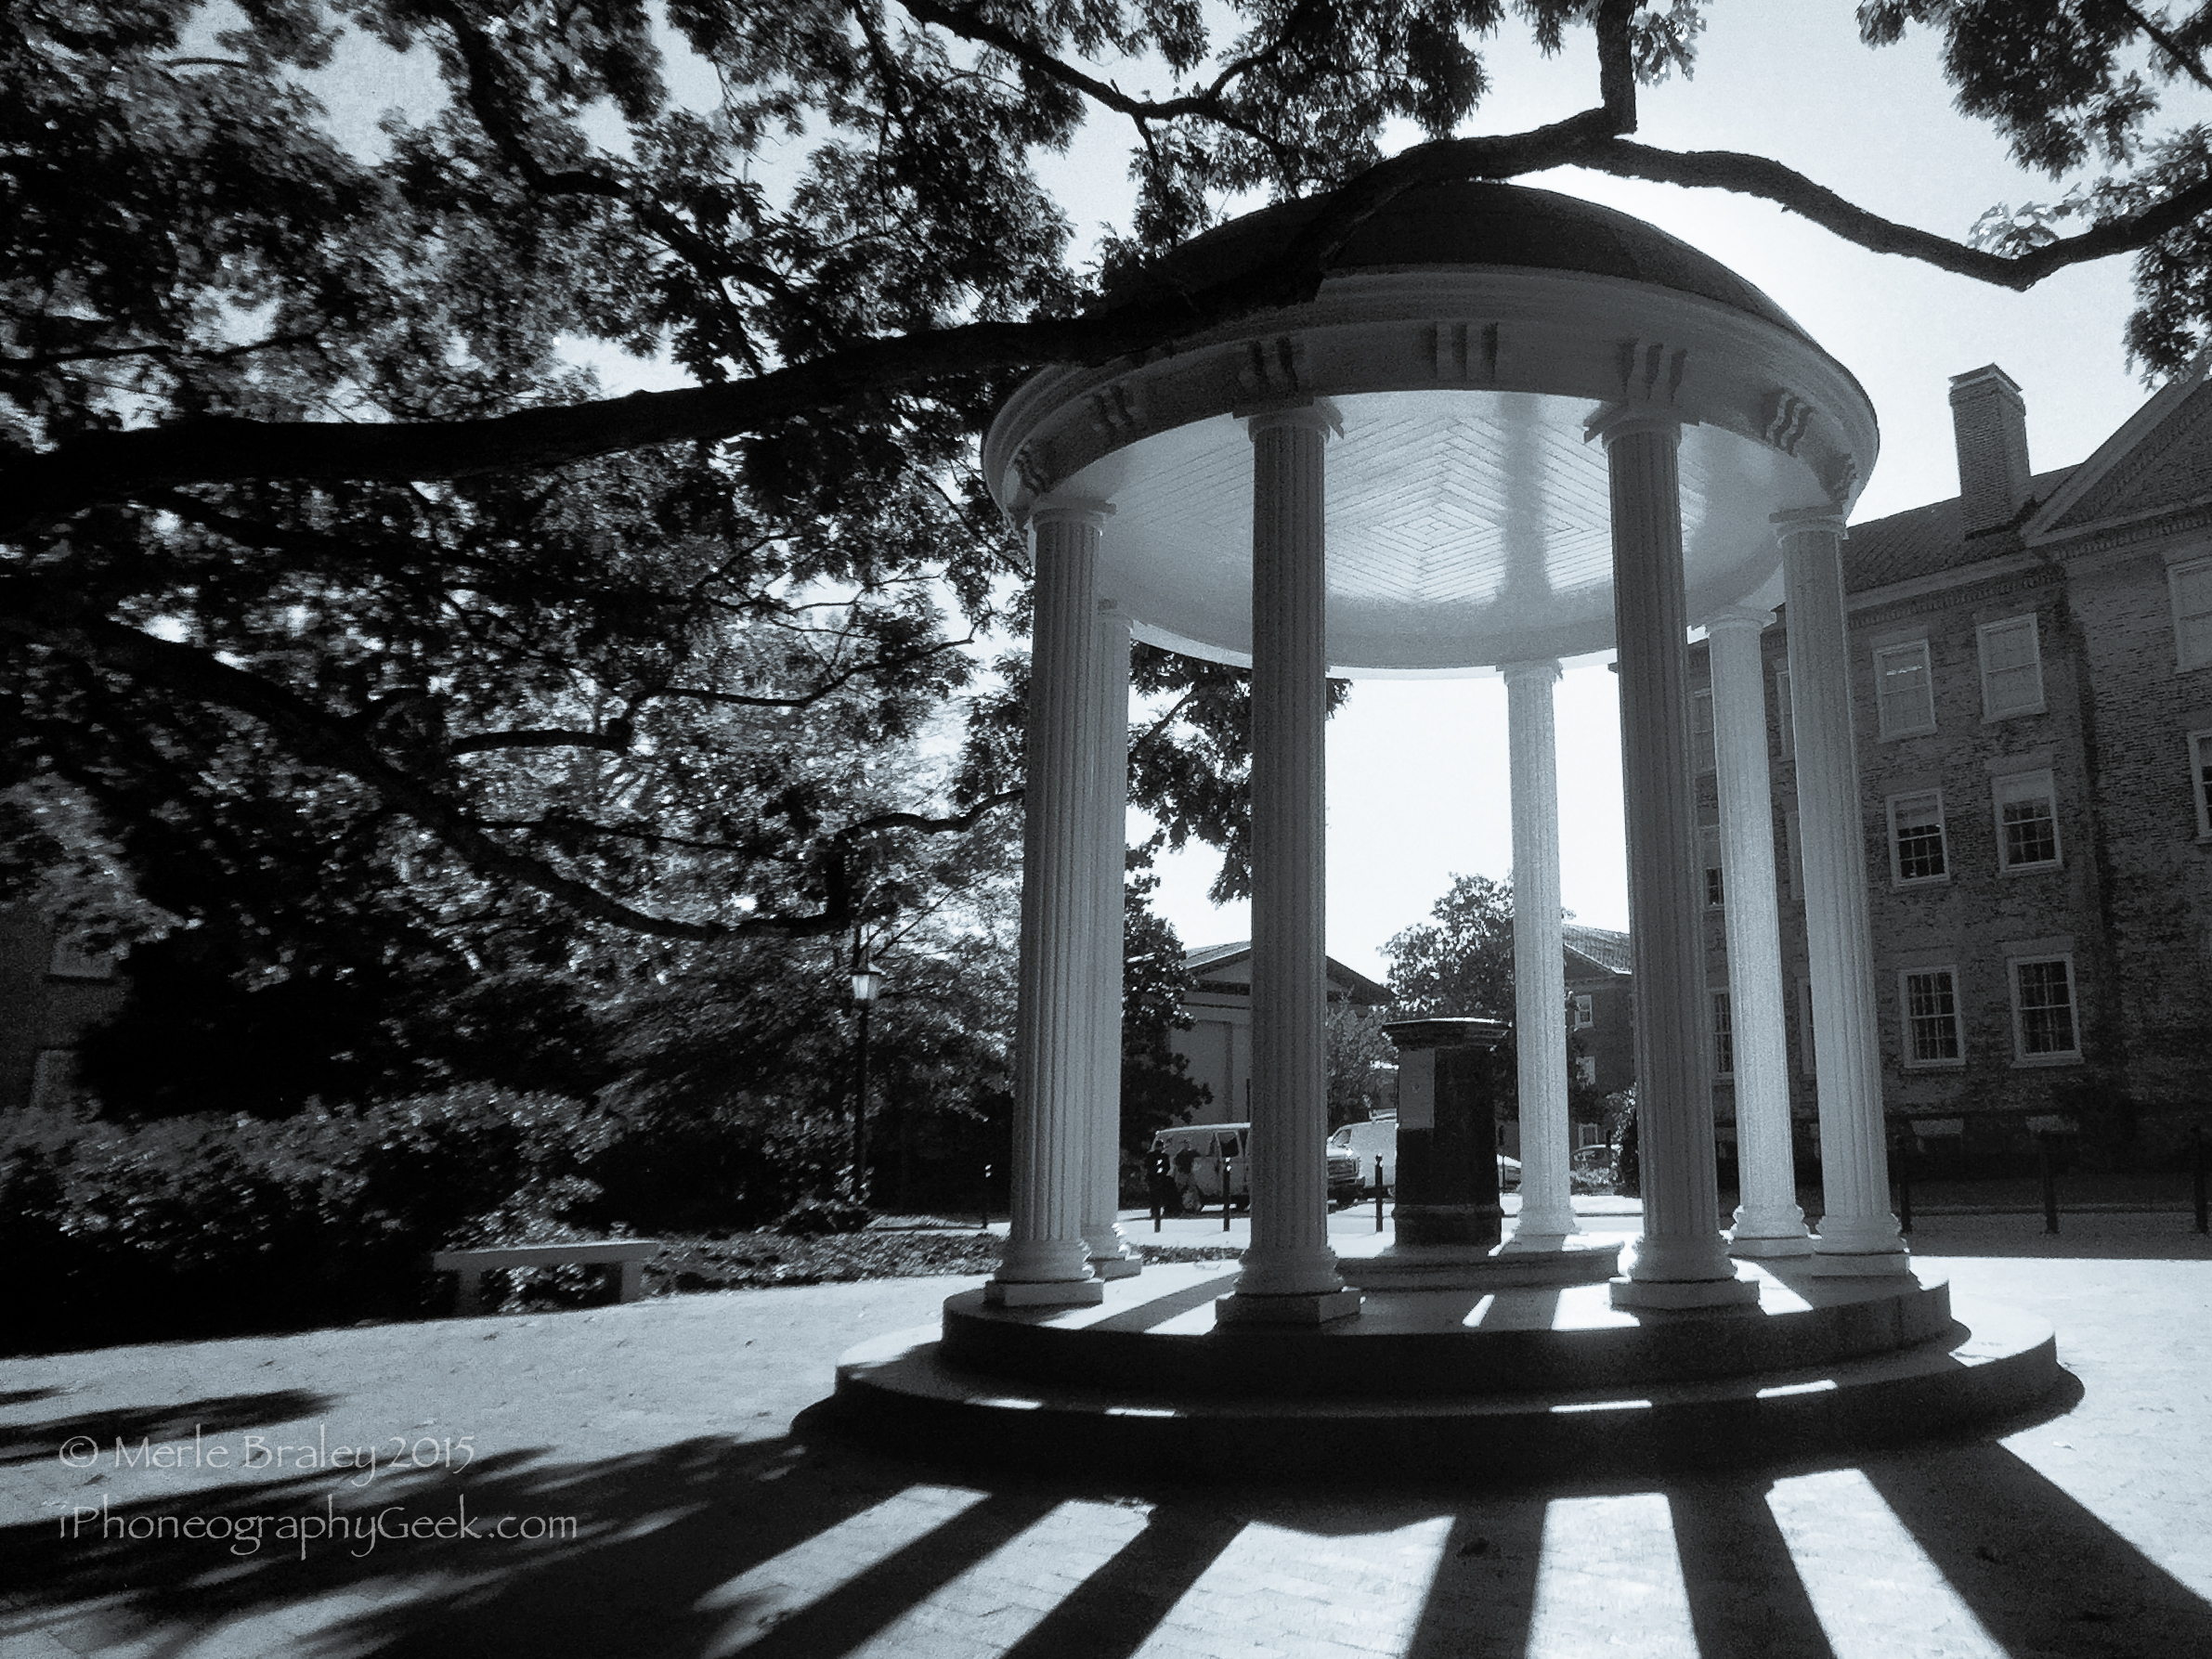 UNC Well (c) Merle Braley 2015-2